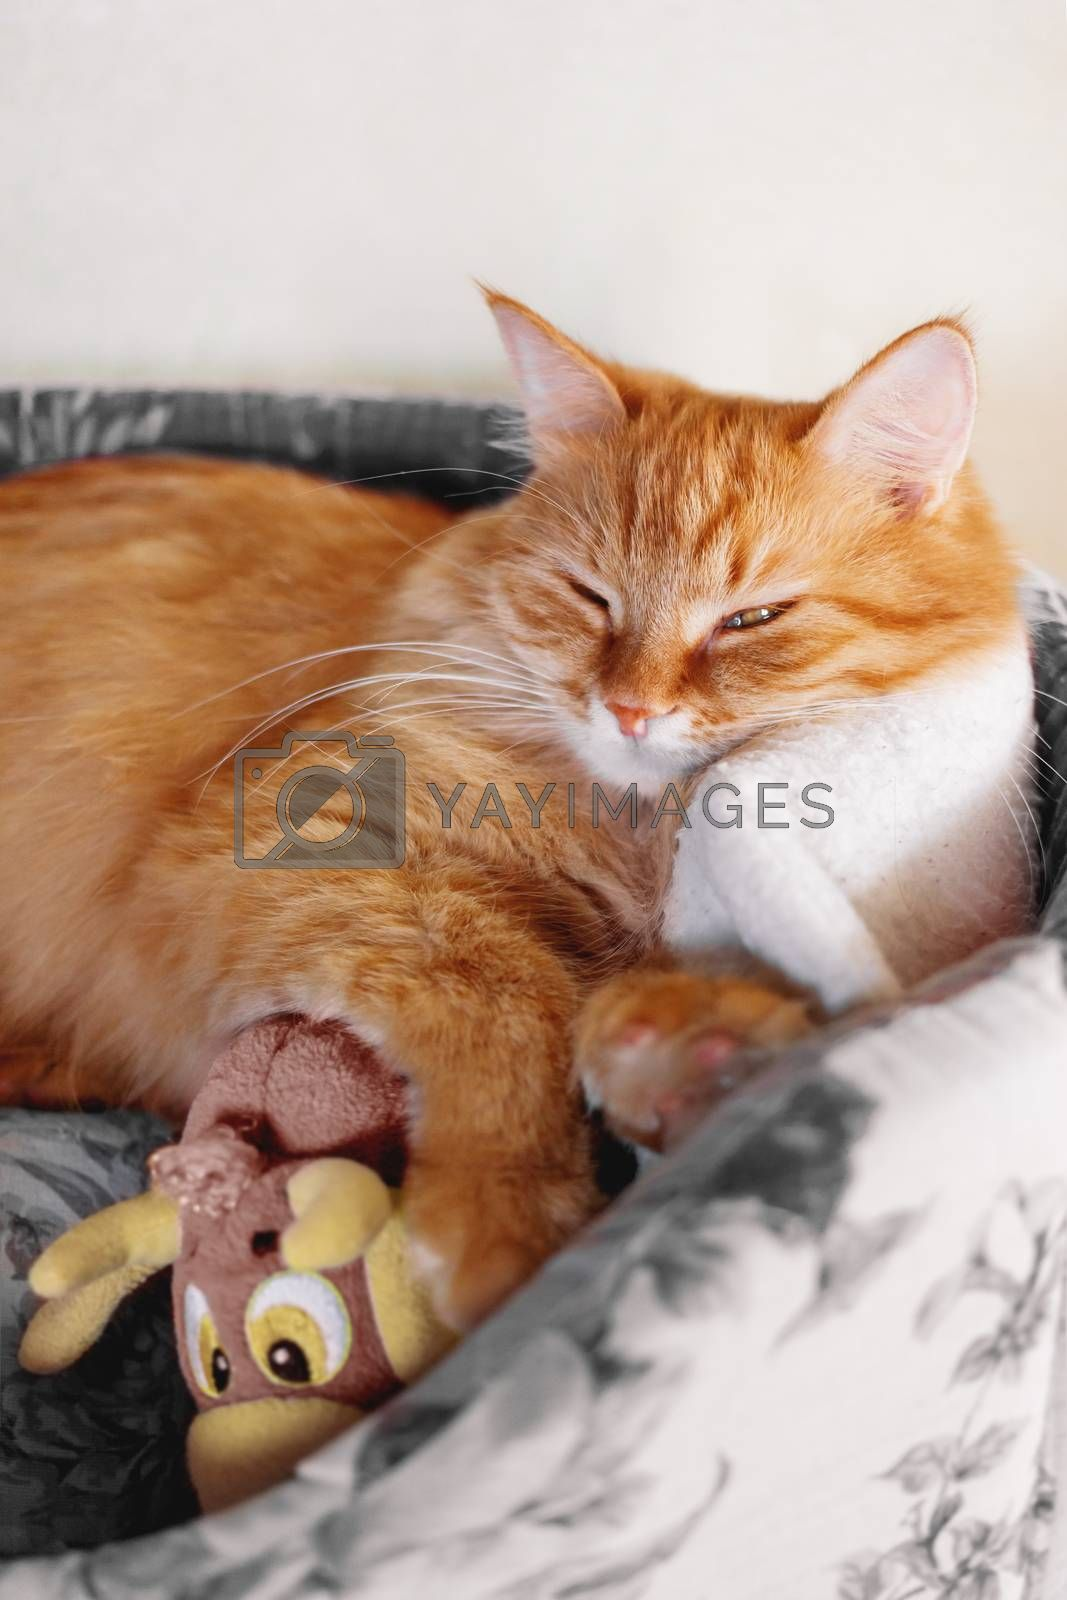 Cute ginger cat sleeping in soft fabric basket with toy. Fluffy pet in cozy home. Domestic animal relaxes.